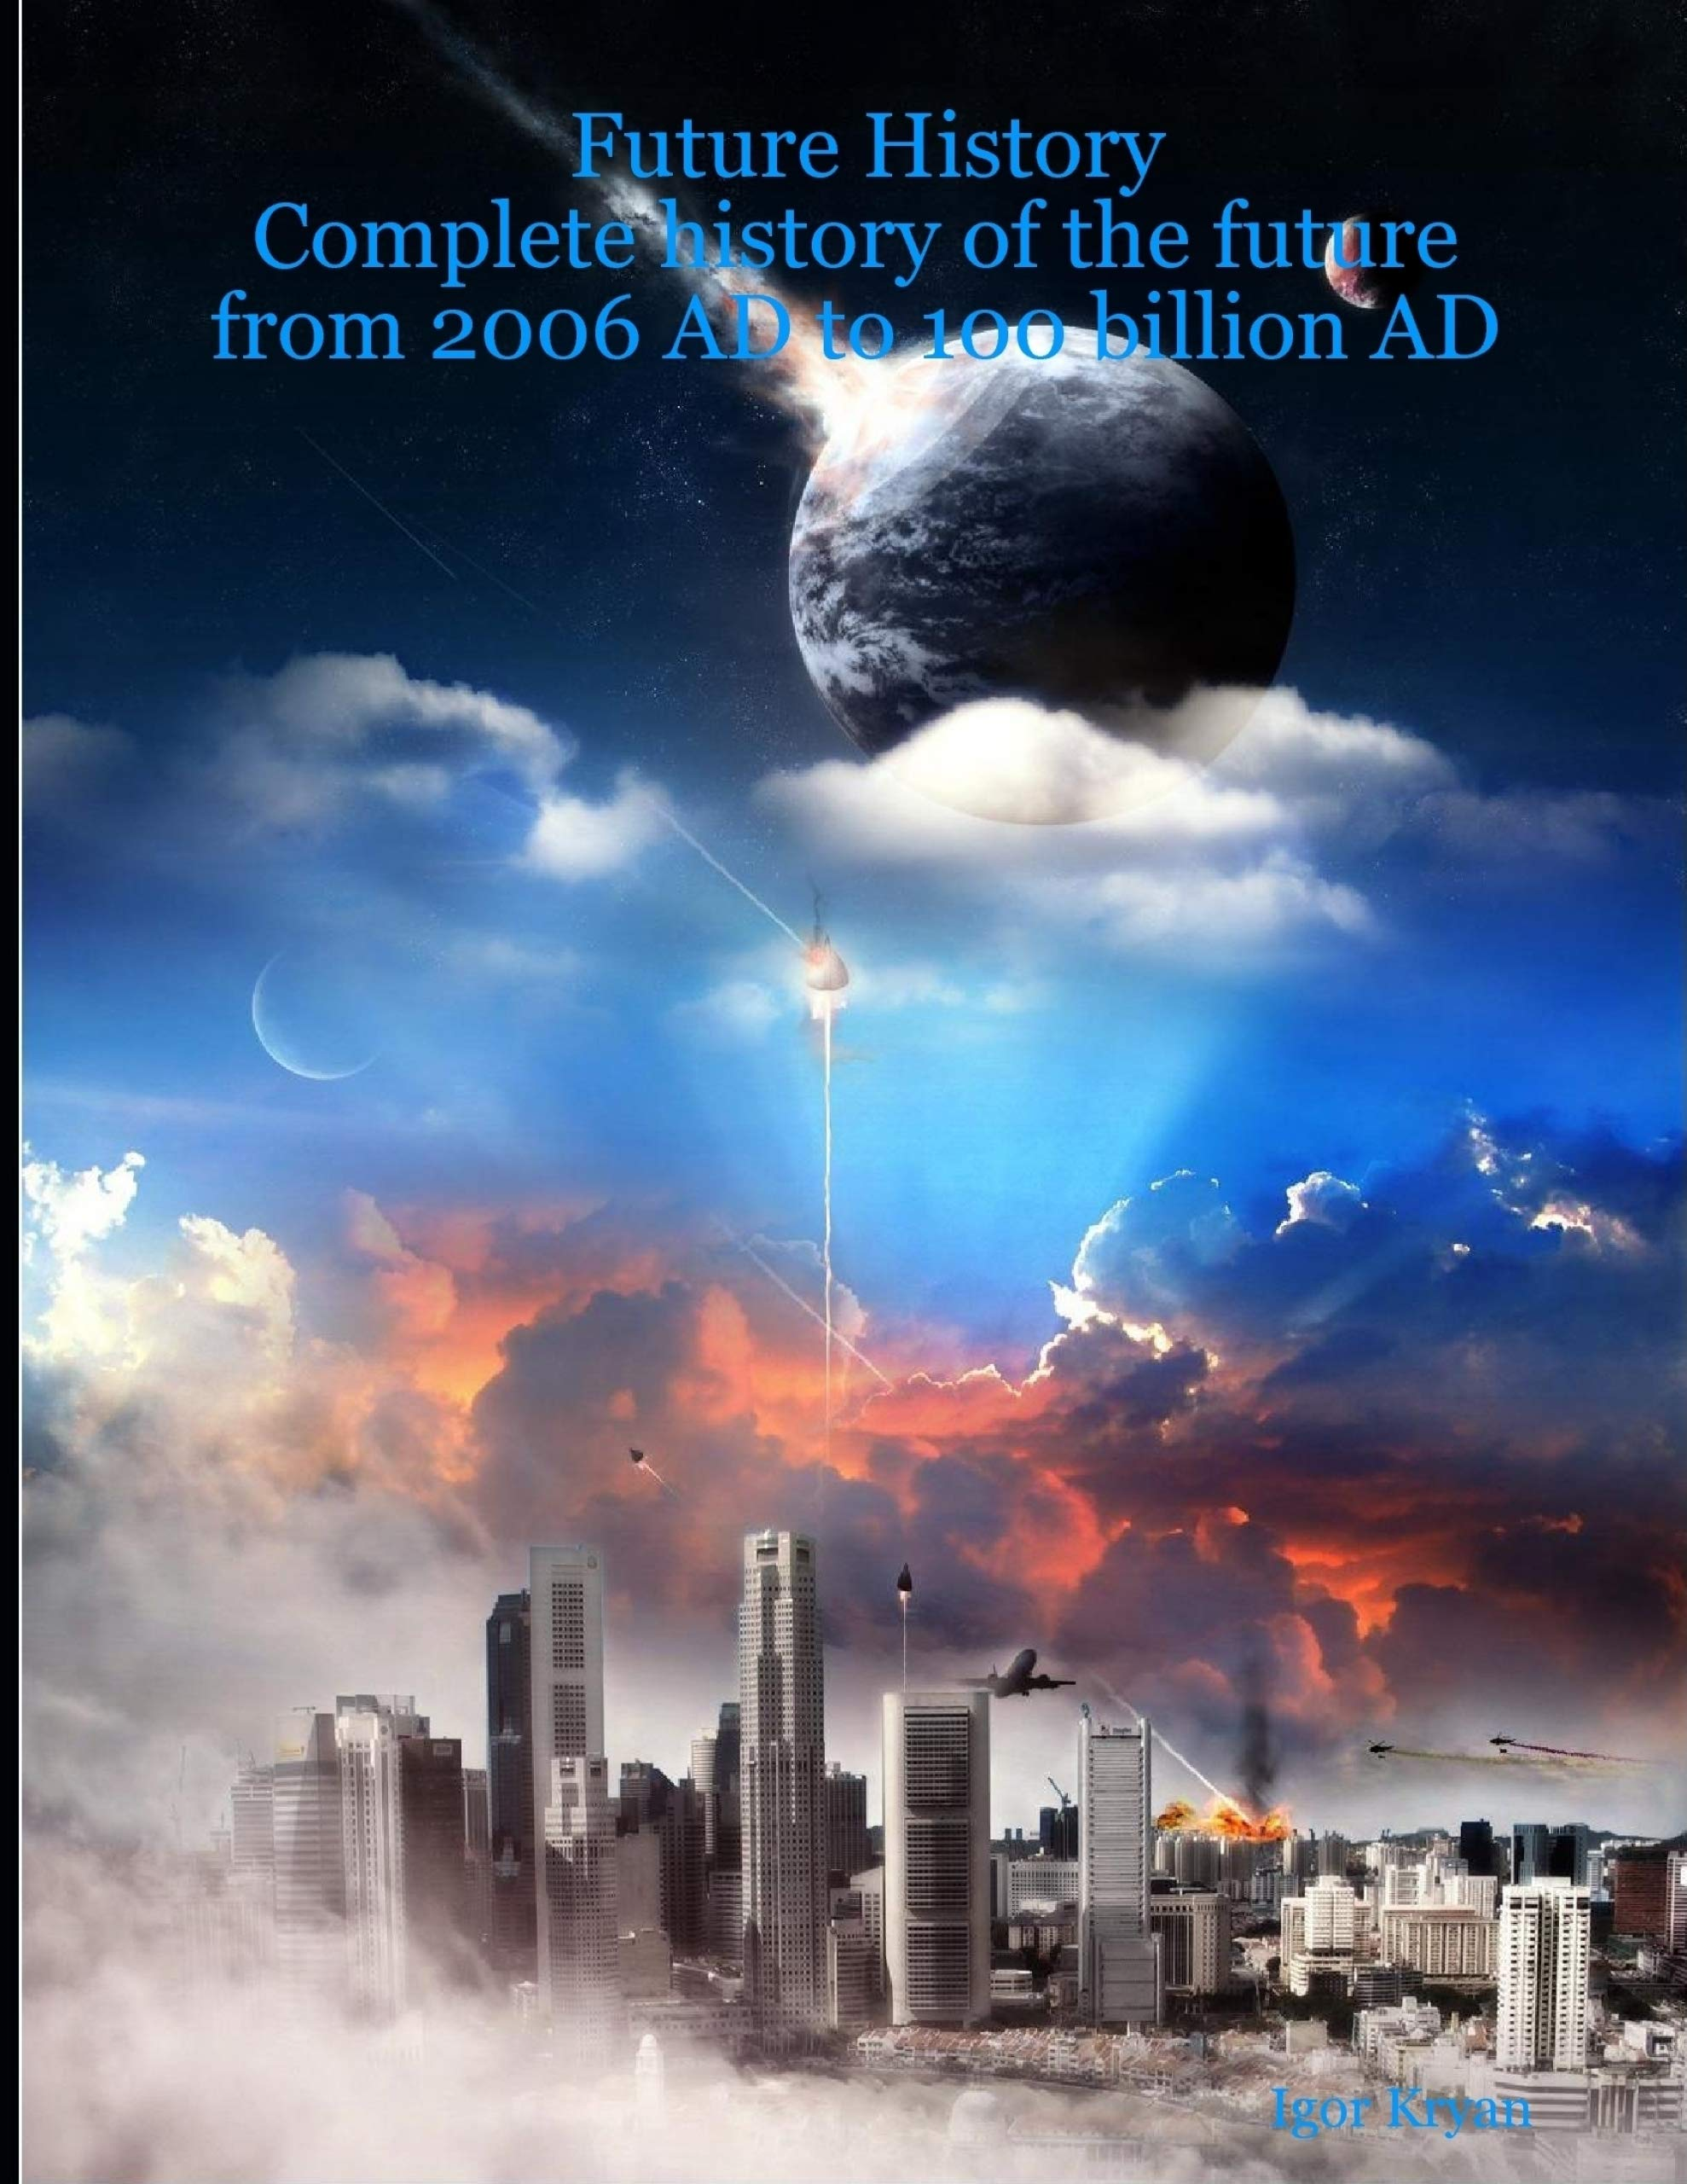 Future History: Complete History of the Future from 2006 AD to 100 Billion AD